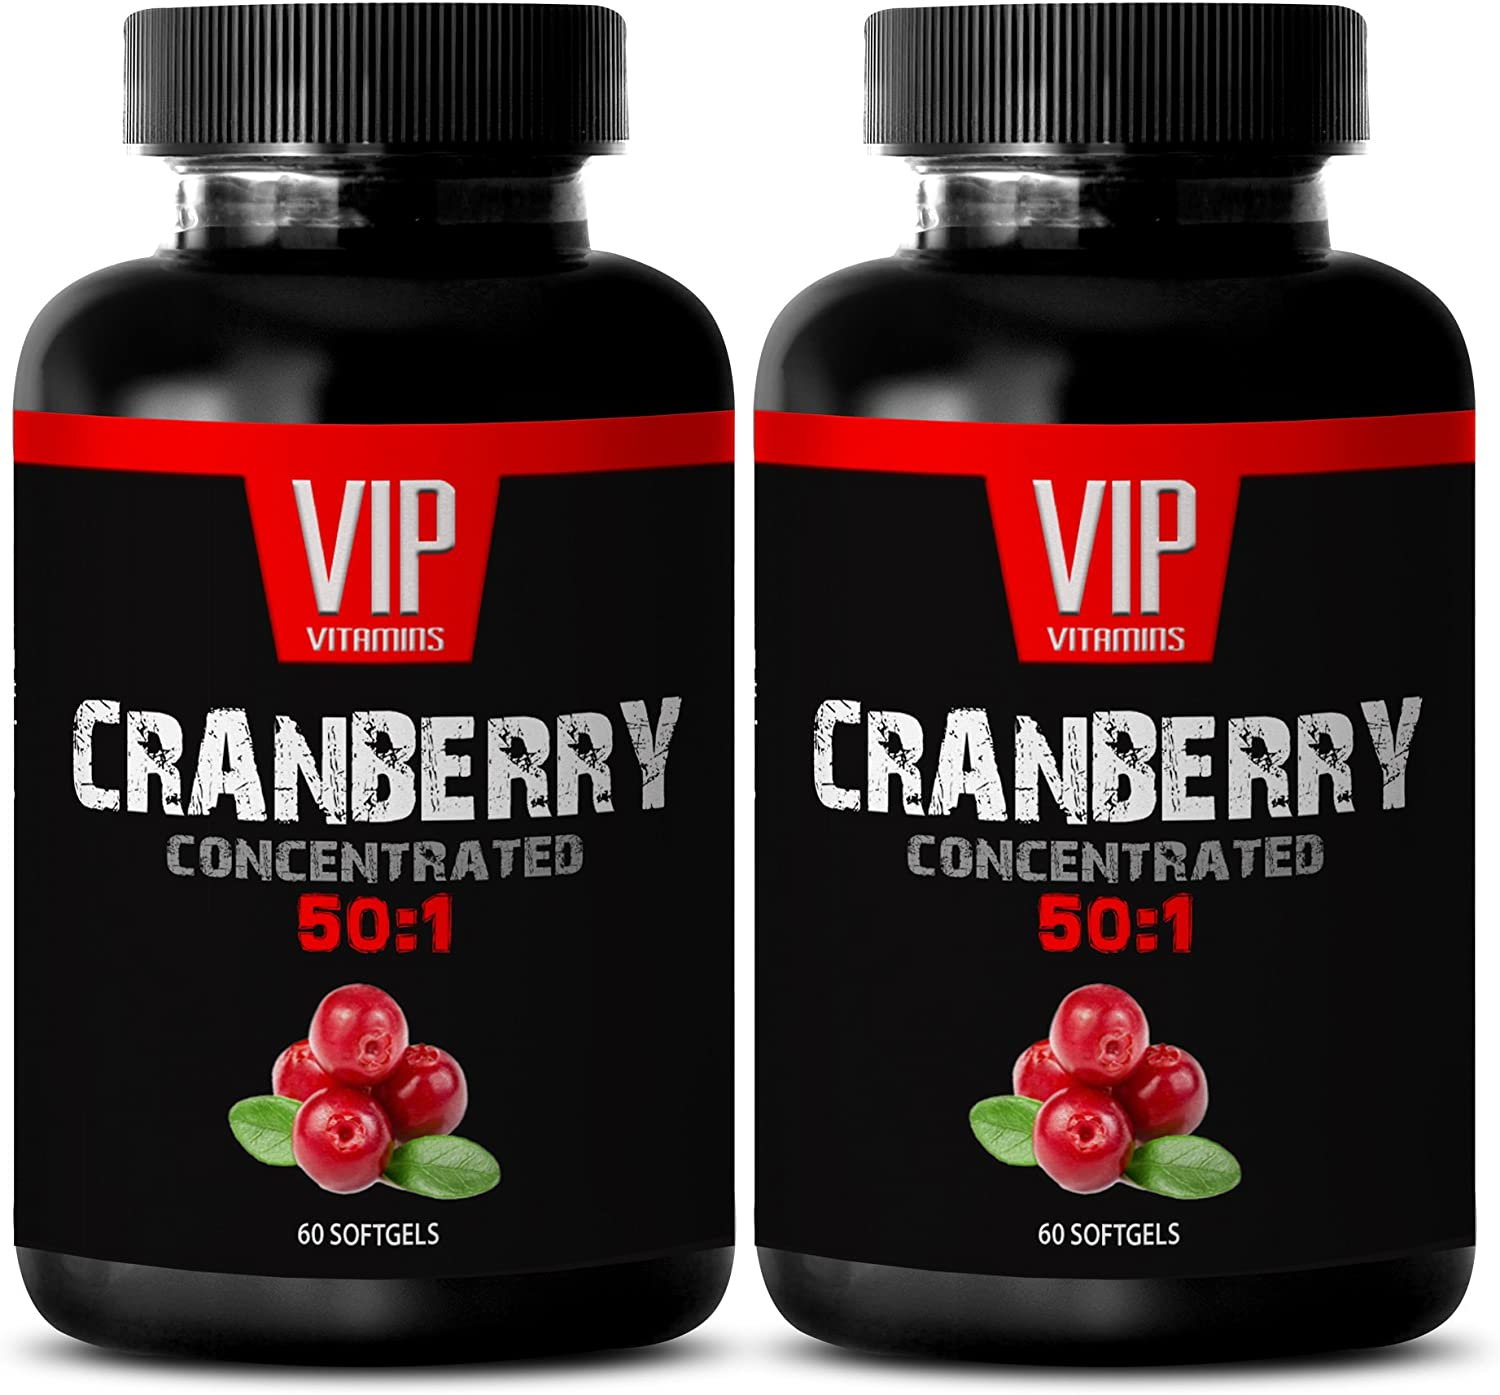 Sales Urinary Tract Infection Natural Remedy Cranberry Max 54% OFF - Concentrate 5